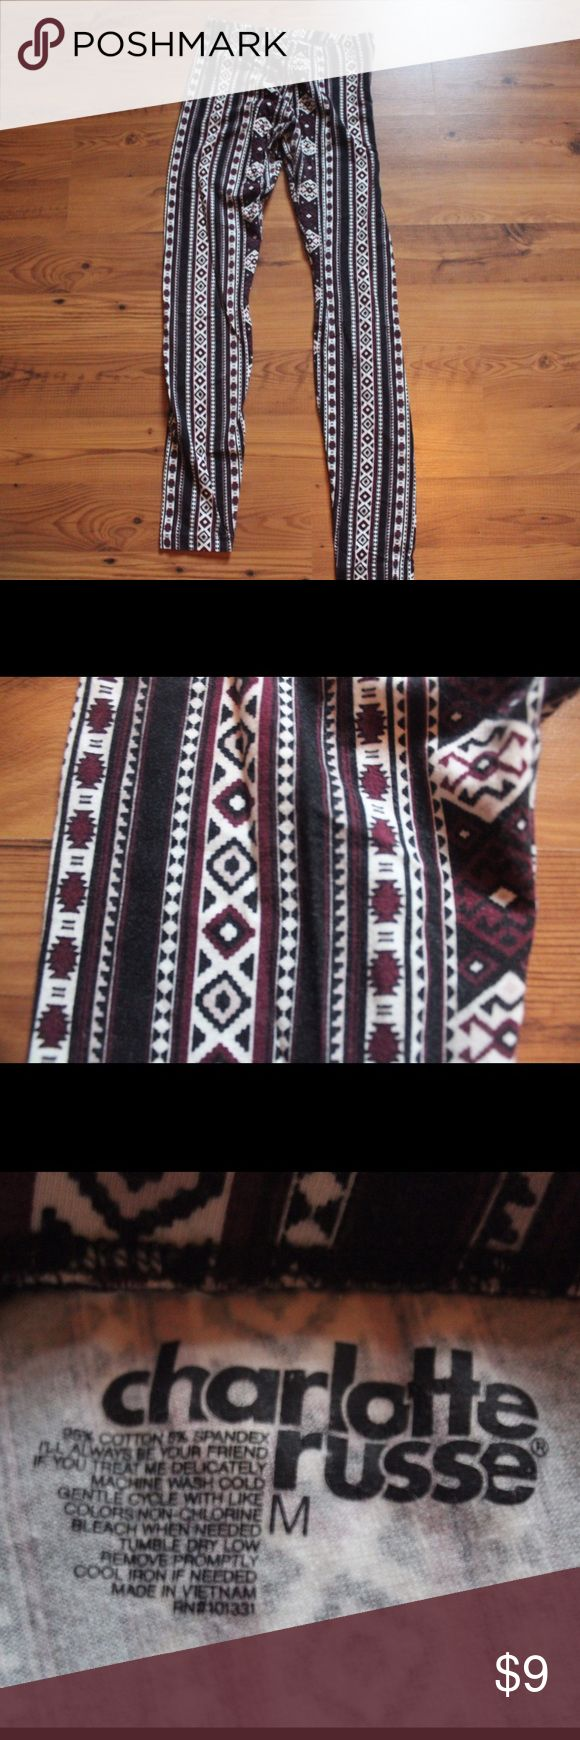 "WORN ONCE Charlotte Russe Aztec Print Leggings 95% cotton 5% spandex. Worn once Charlotte Russe Aztec print leggings. Size medium. 27"" inseam. 🚫SMOKE FREE HOME🚫 ☄️Offers welcome and encouraged!☄️ Charlotte Russe Pants Leggings"